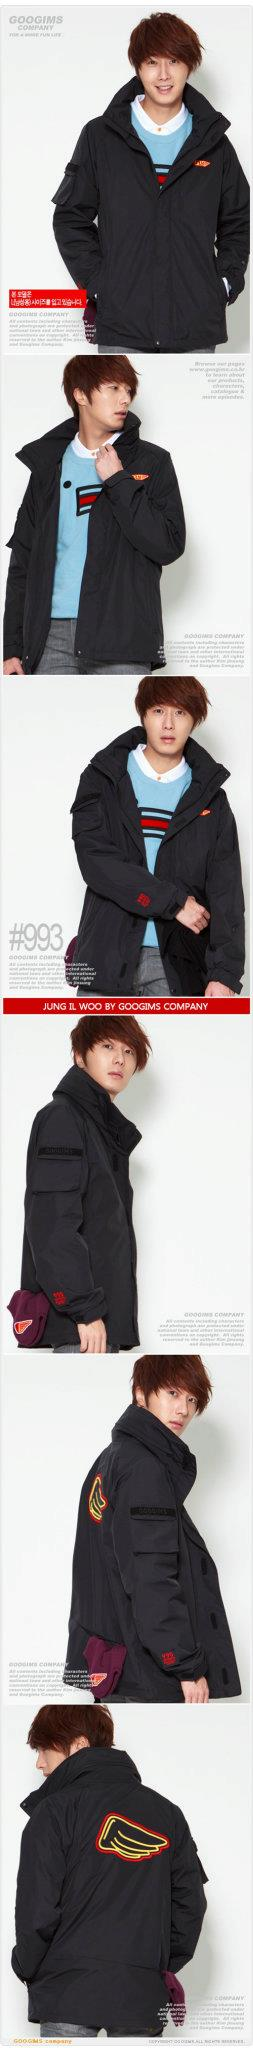 2011 10 Jung II-woo for Googims. Part 3 00017